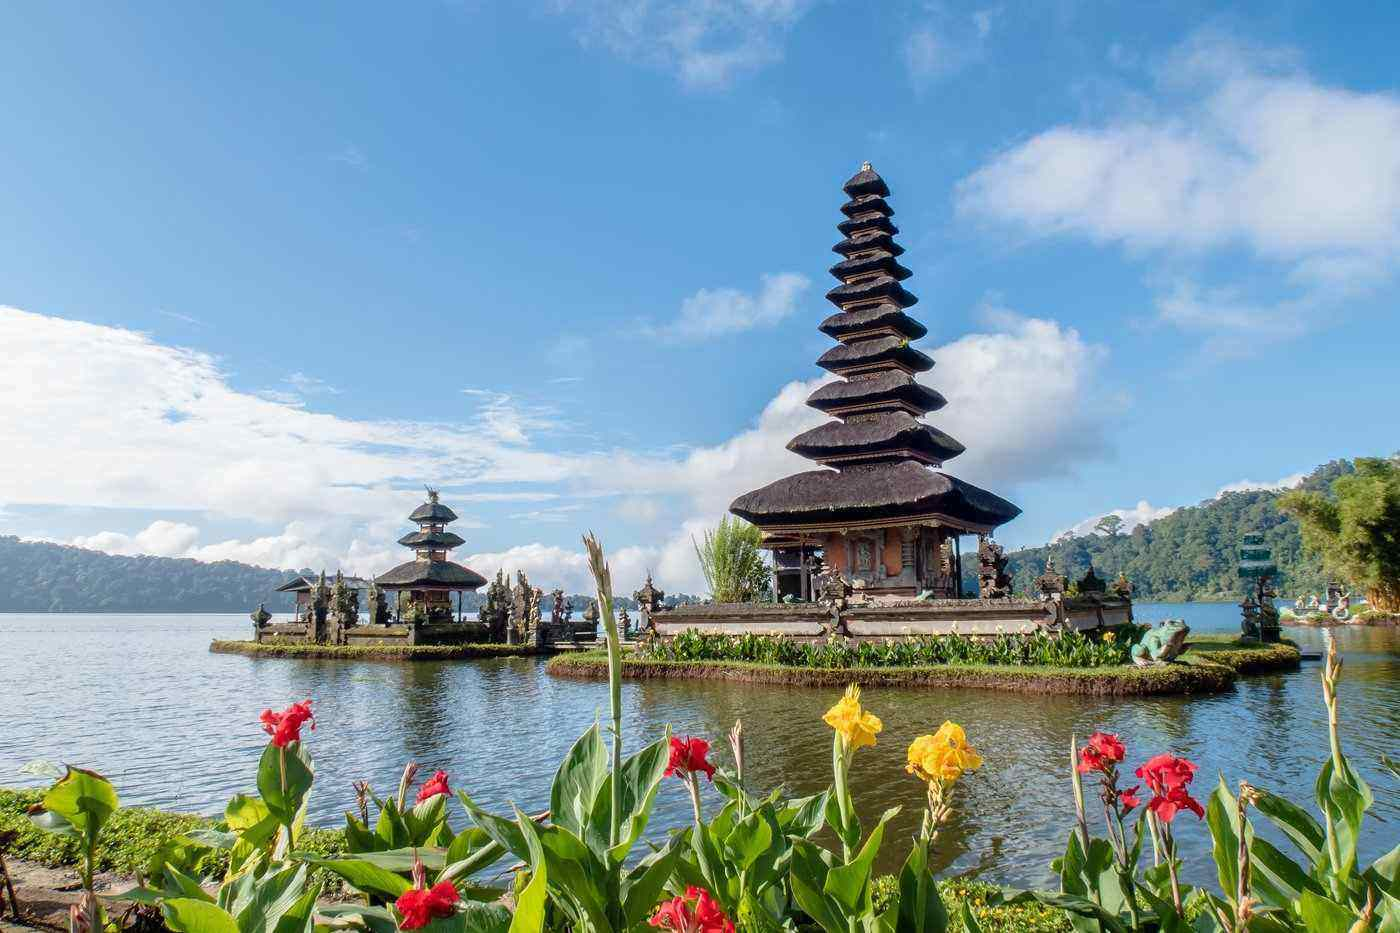 bali, indonesia - 8 most beautiful and best cities to visit in asia